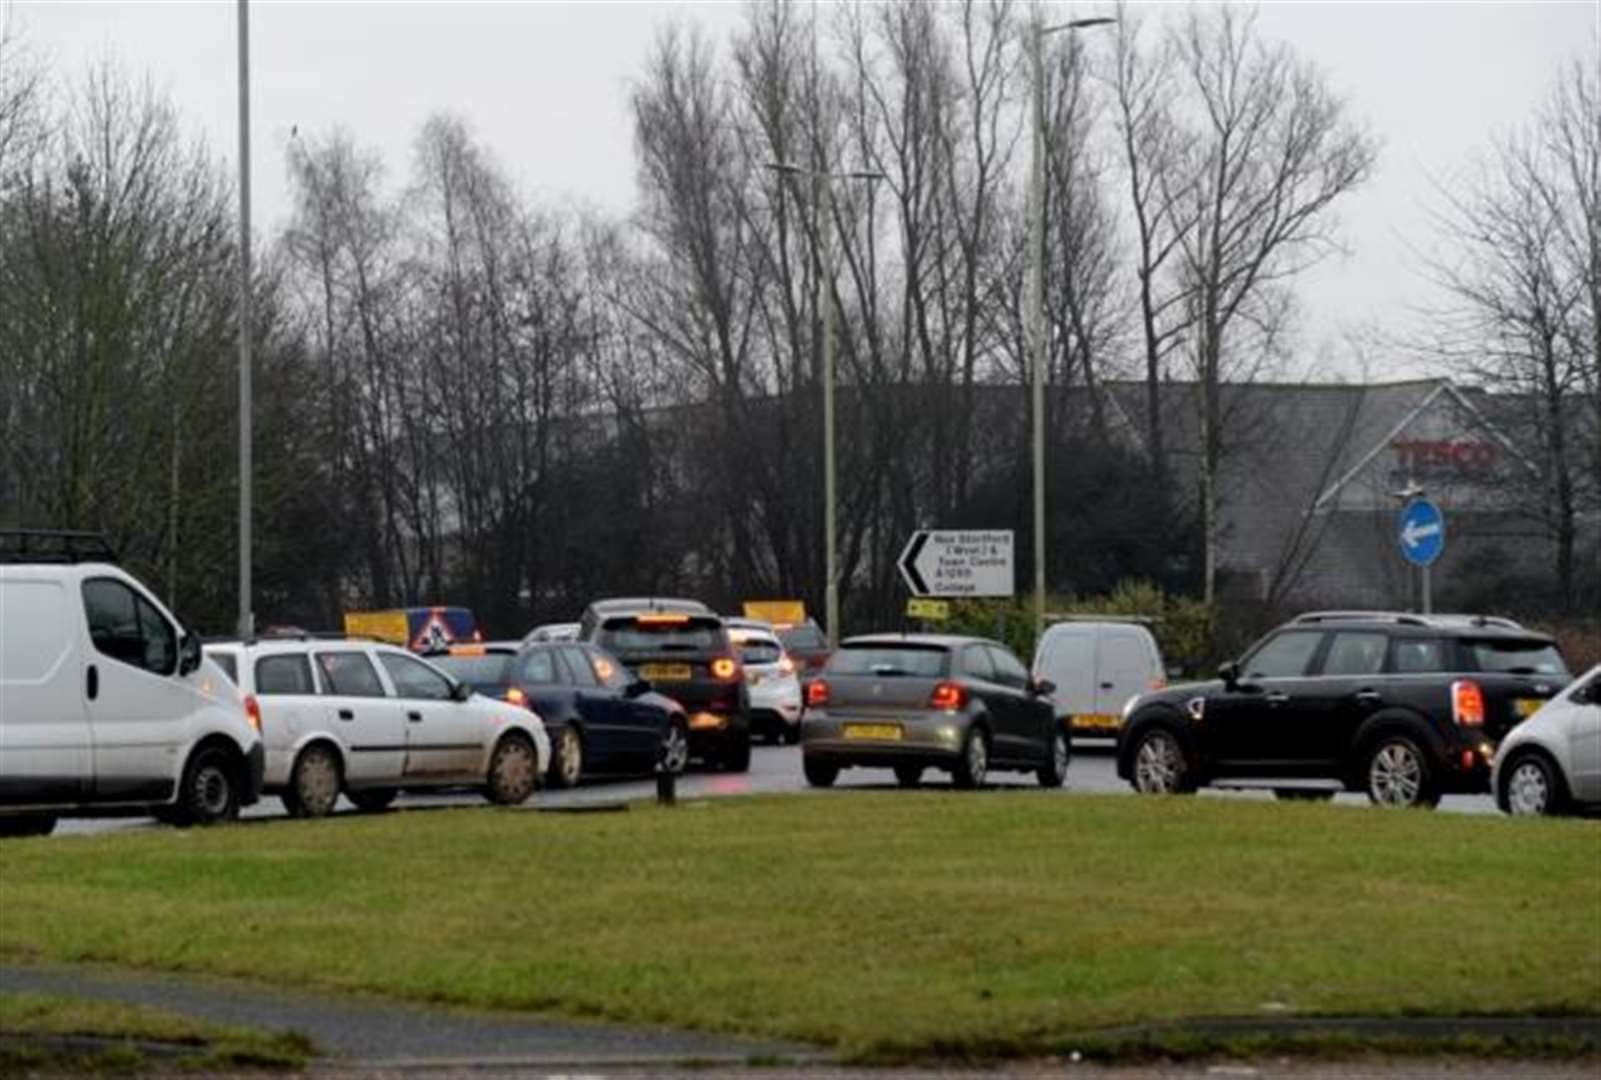 Herts County Council plans improvments to key Stortford roundabout